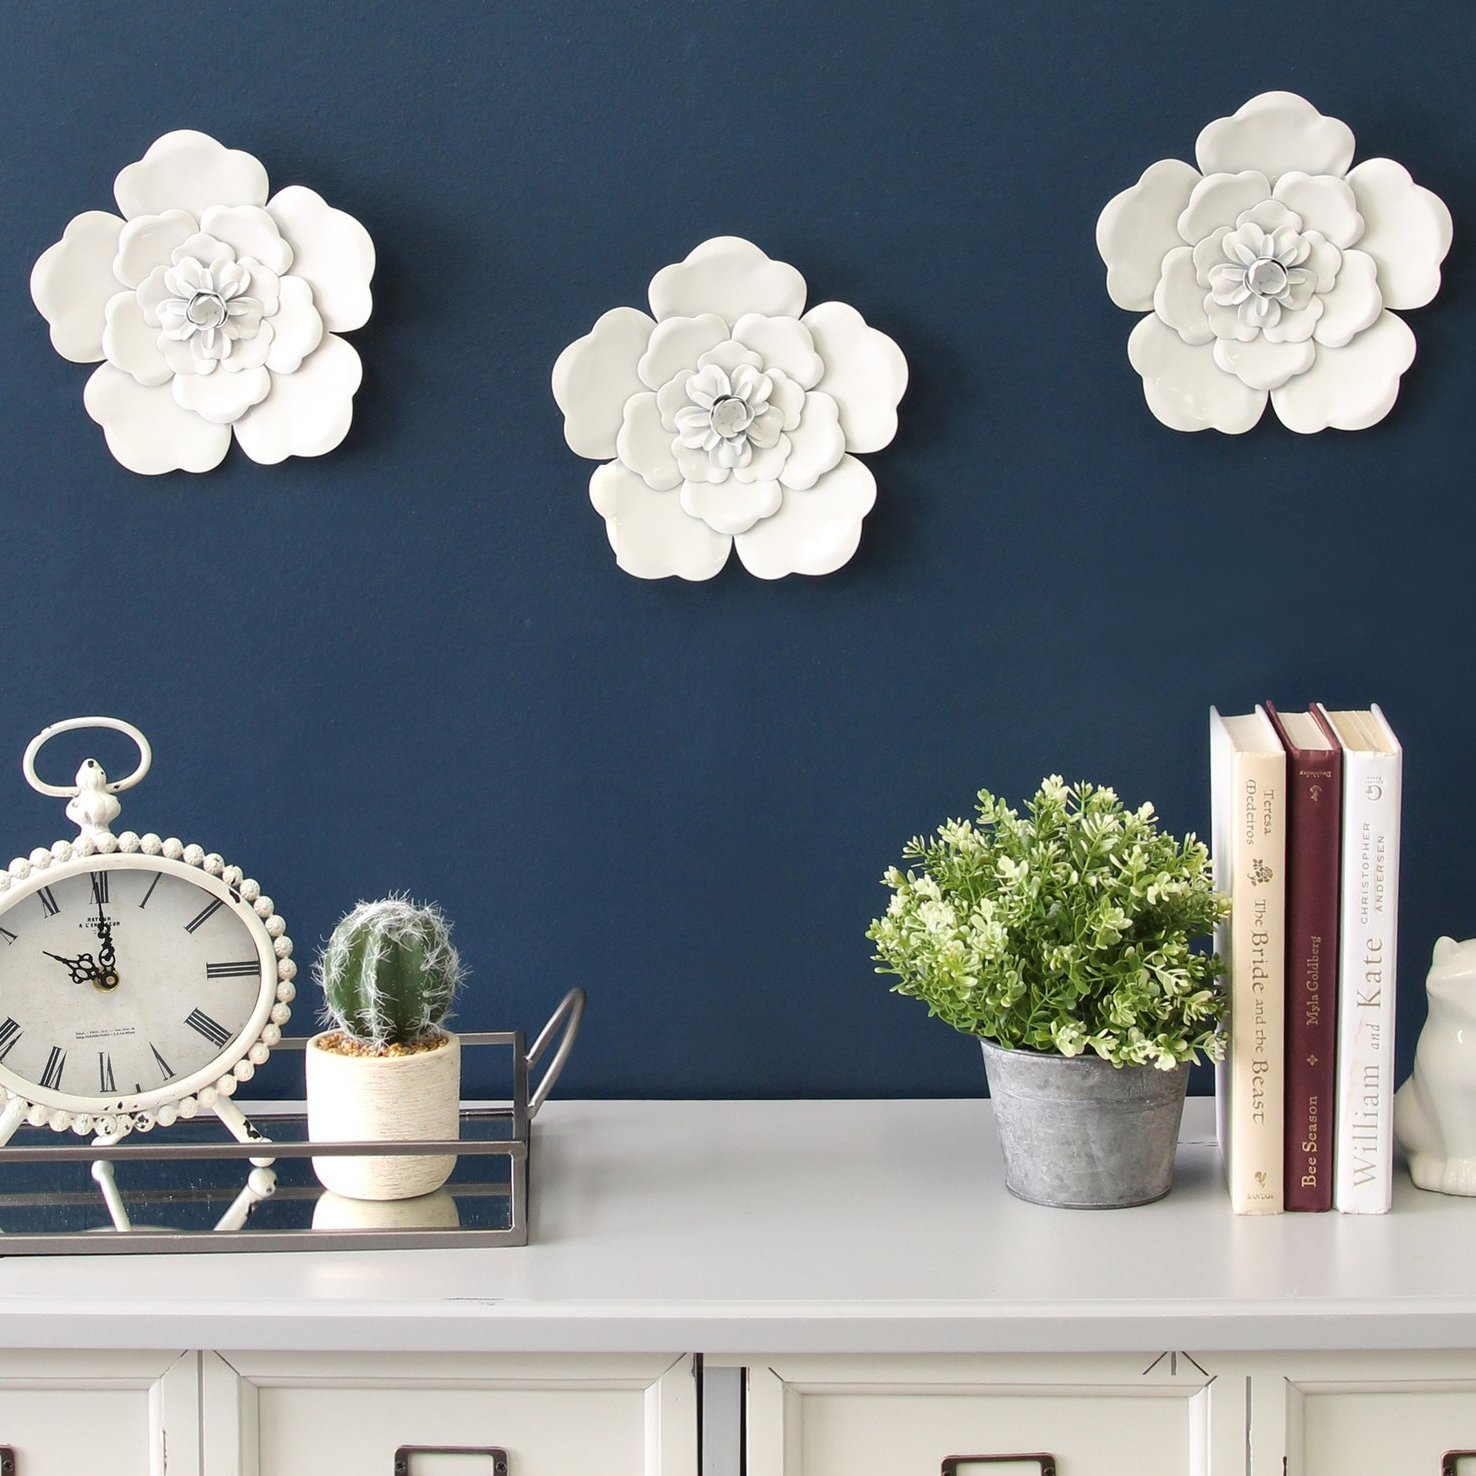 Metal Wall Flowers | Wayfair within Farm Metal Wall Rack And 3 Tin Pot With Hanger Wall Decor (Image 20 of 30)